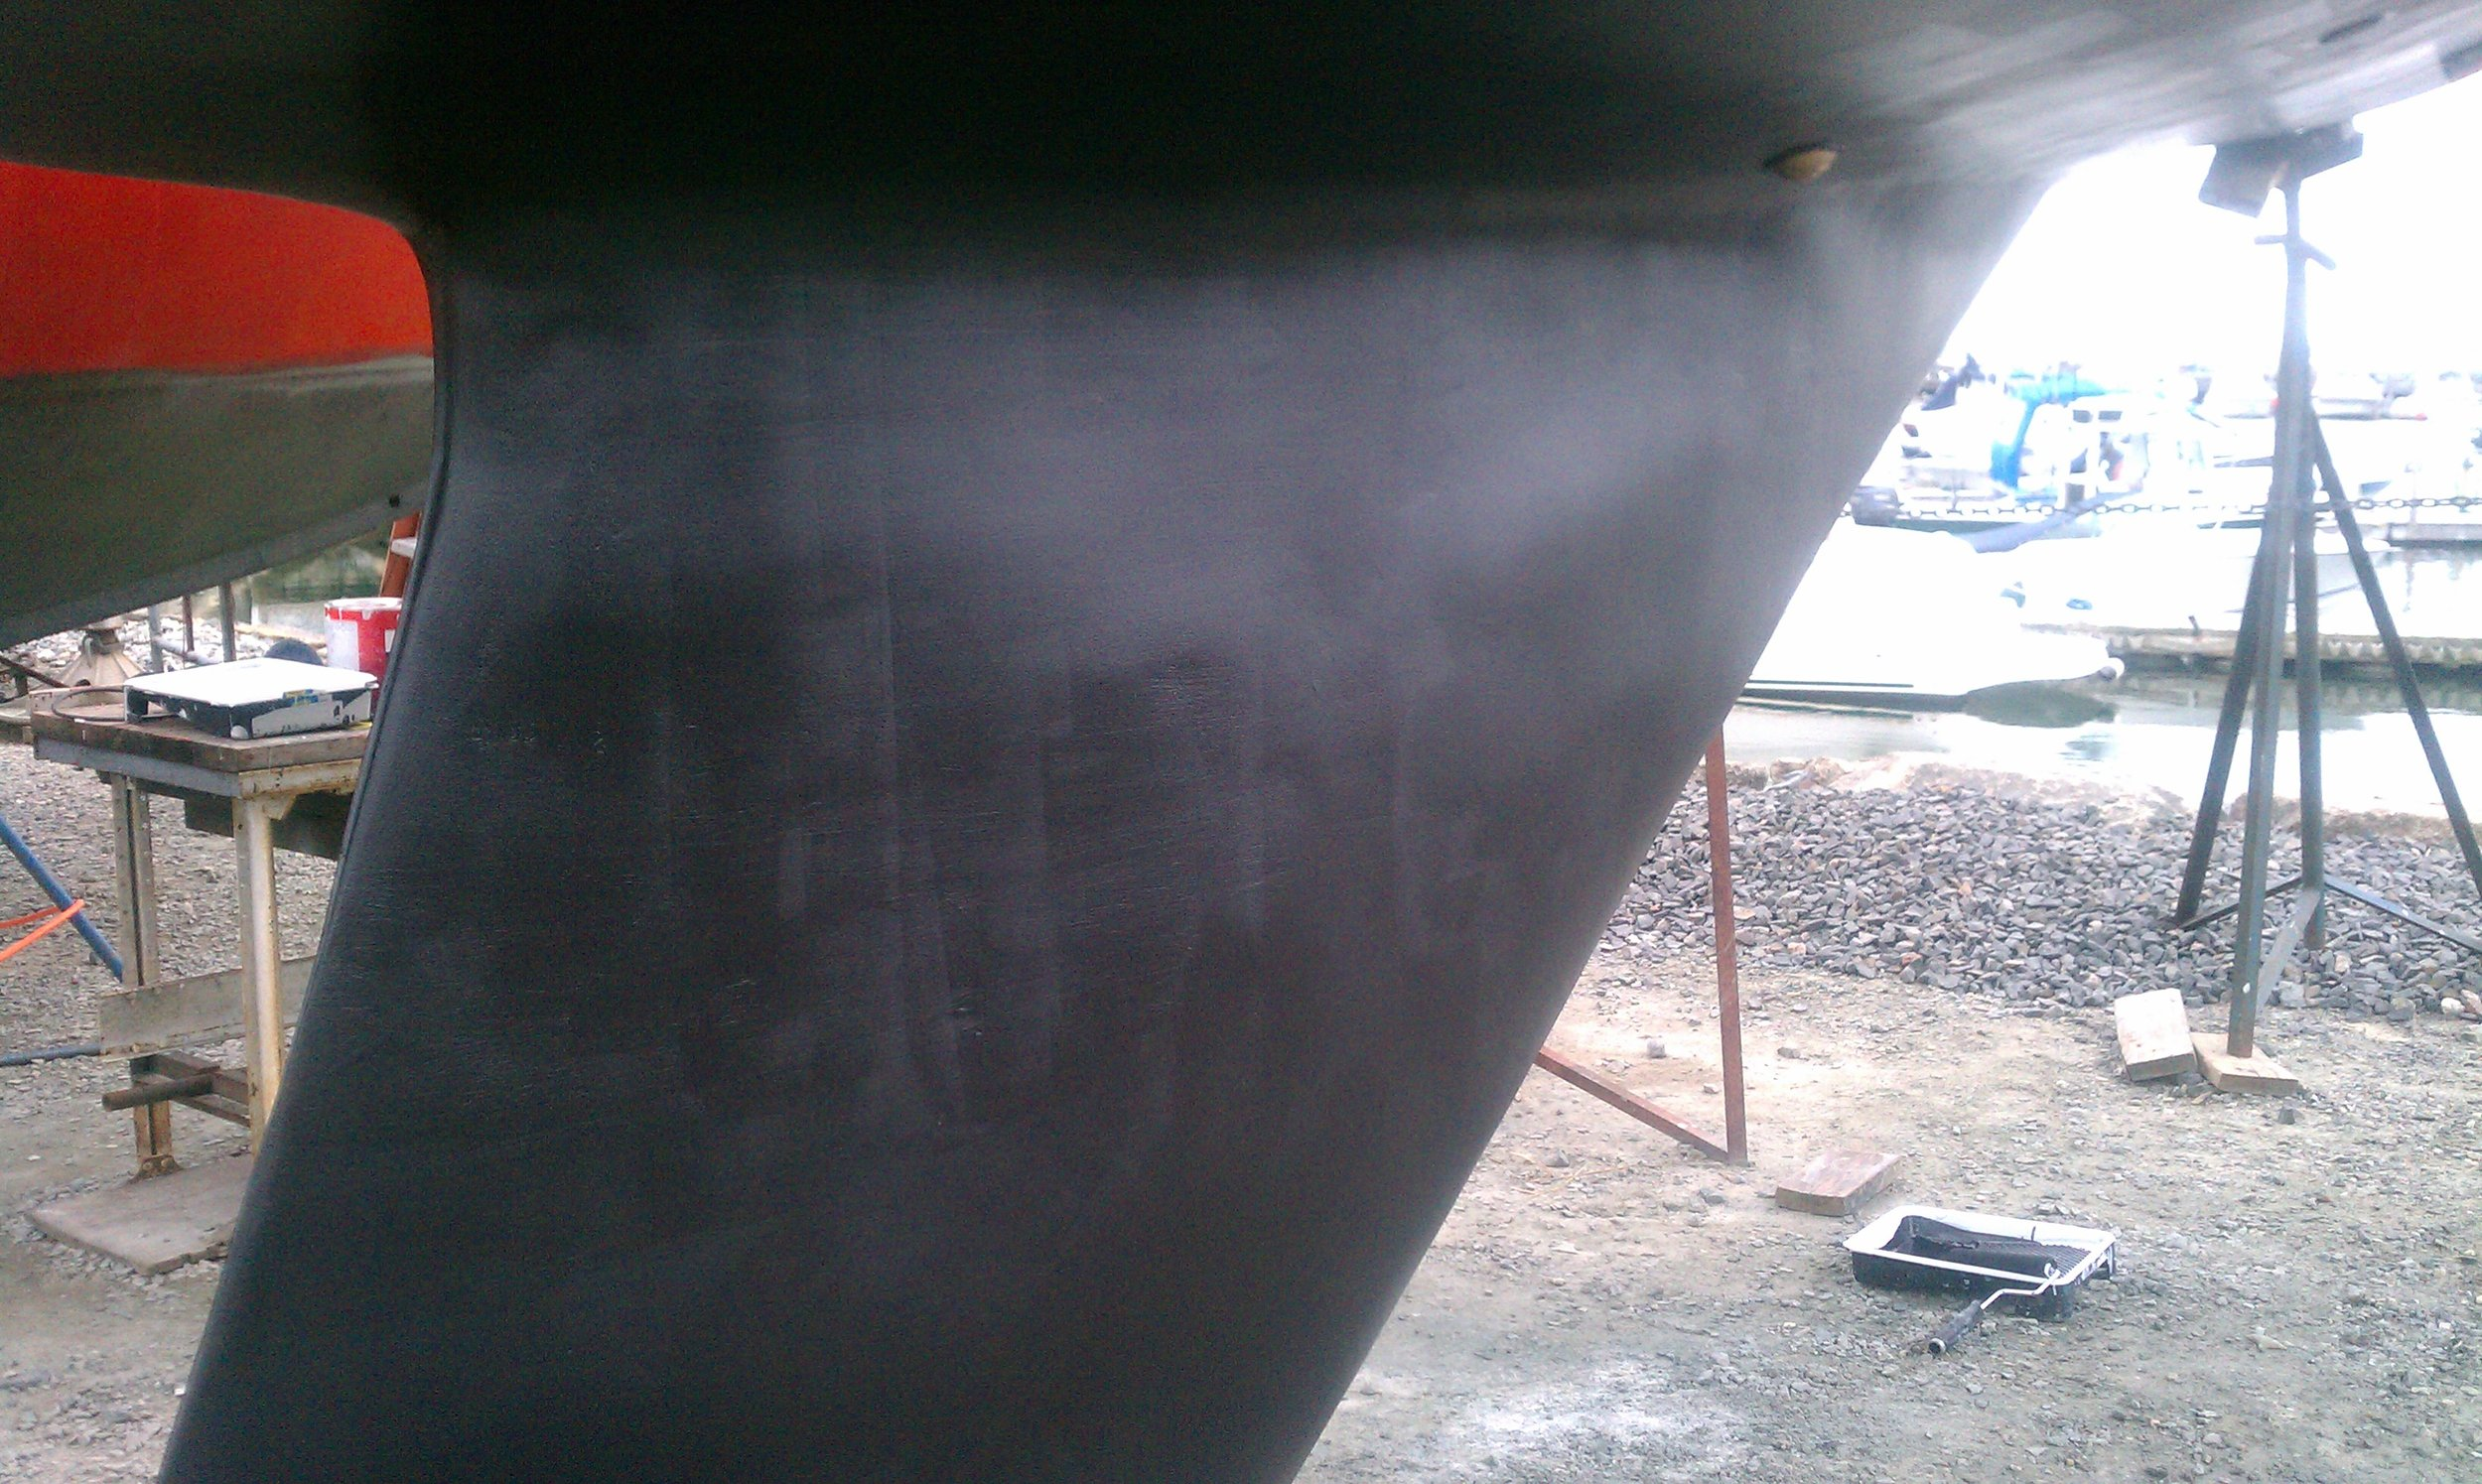 Keel repaired and finished with ablative anti-fouling paint